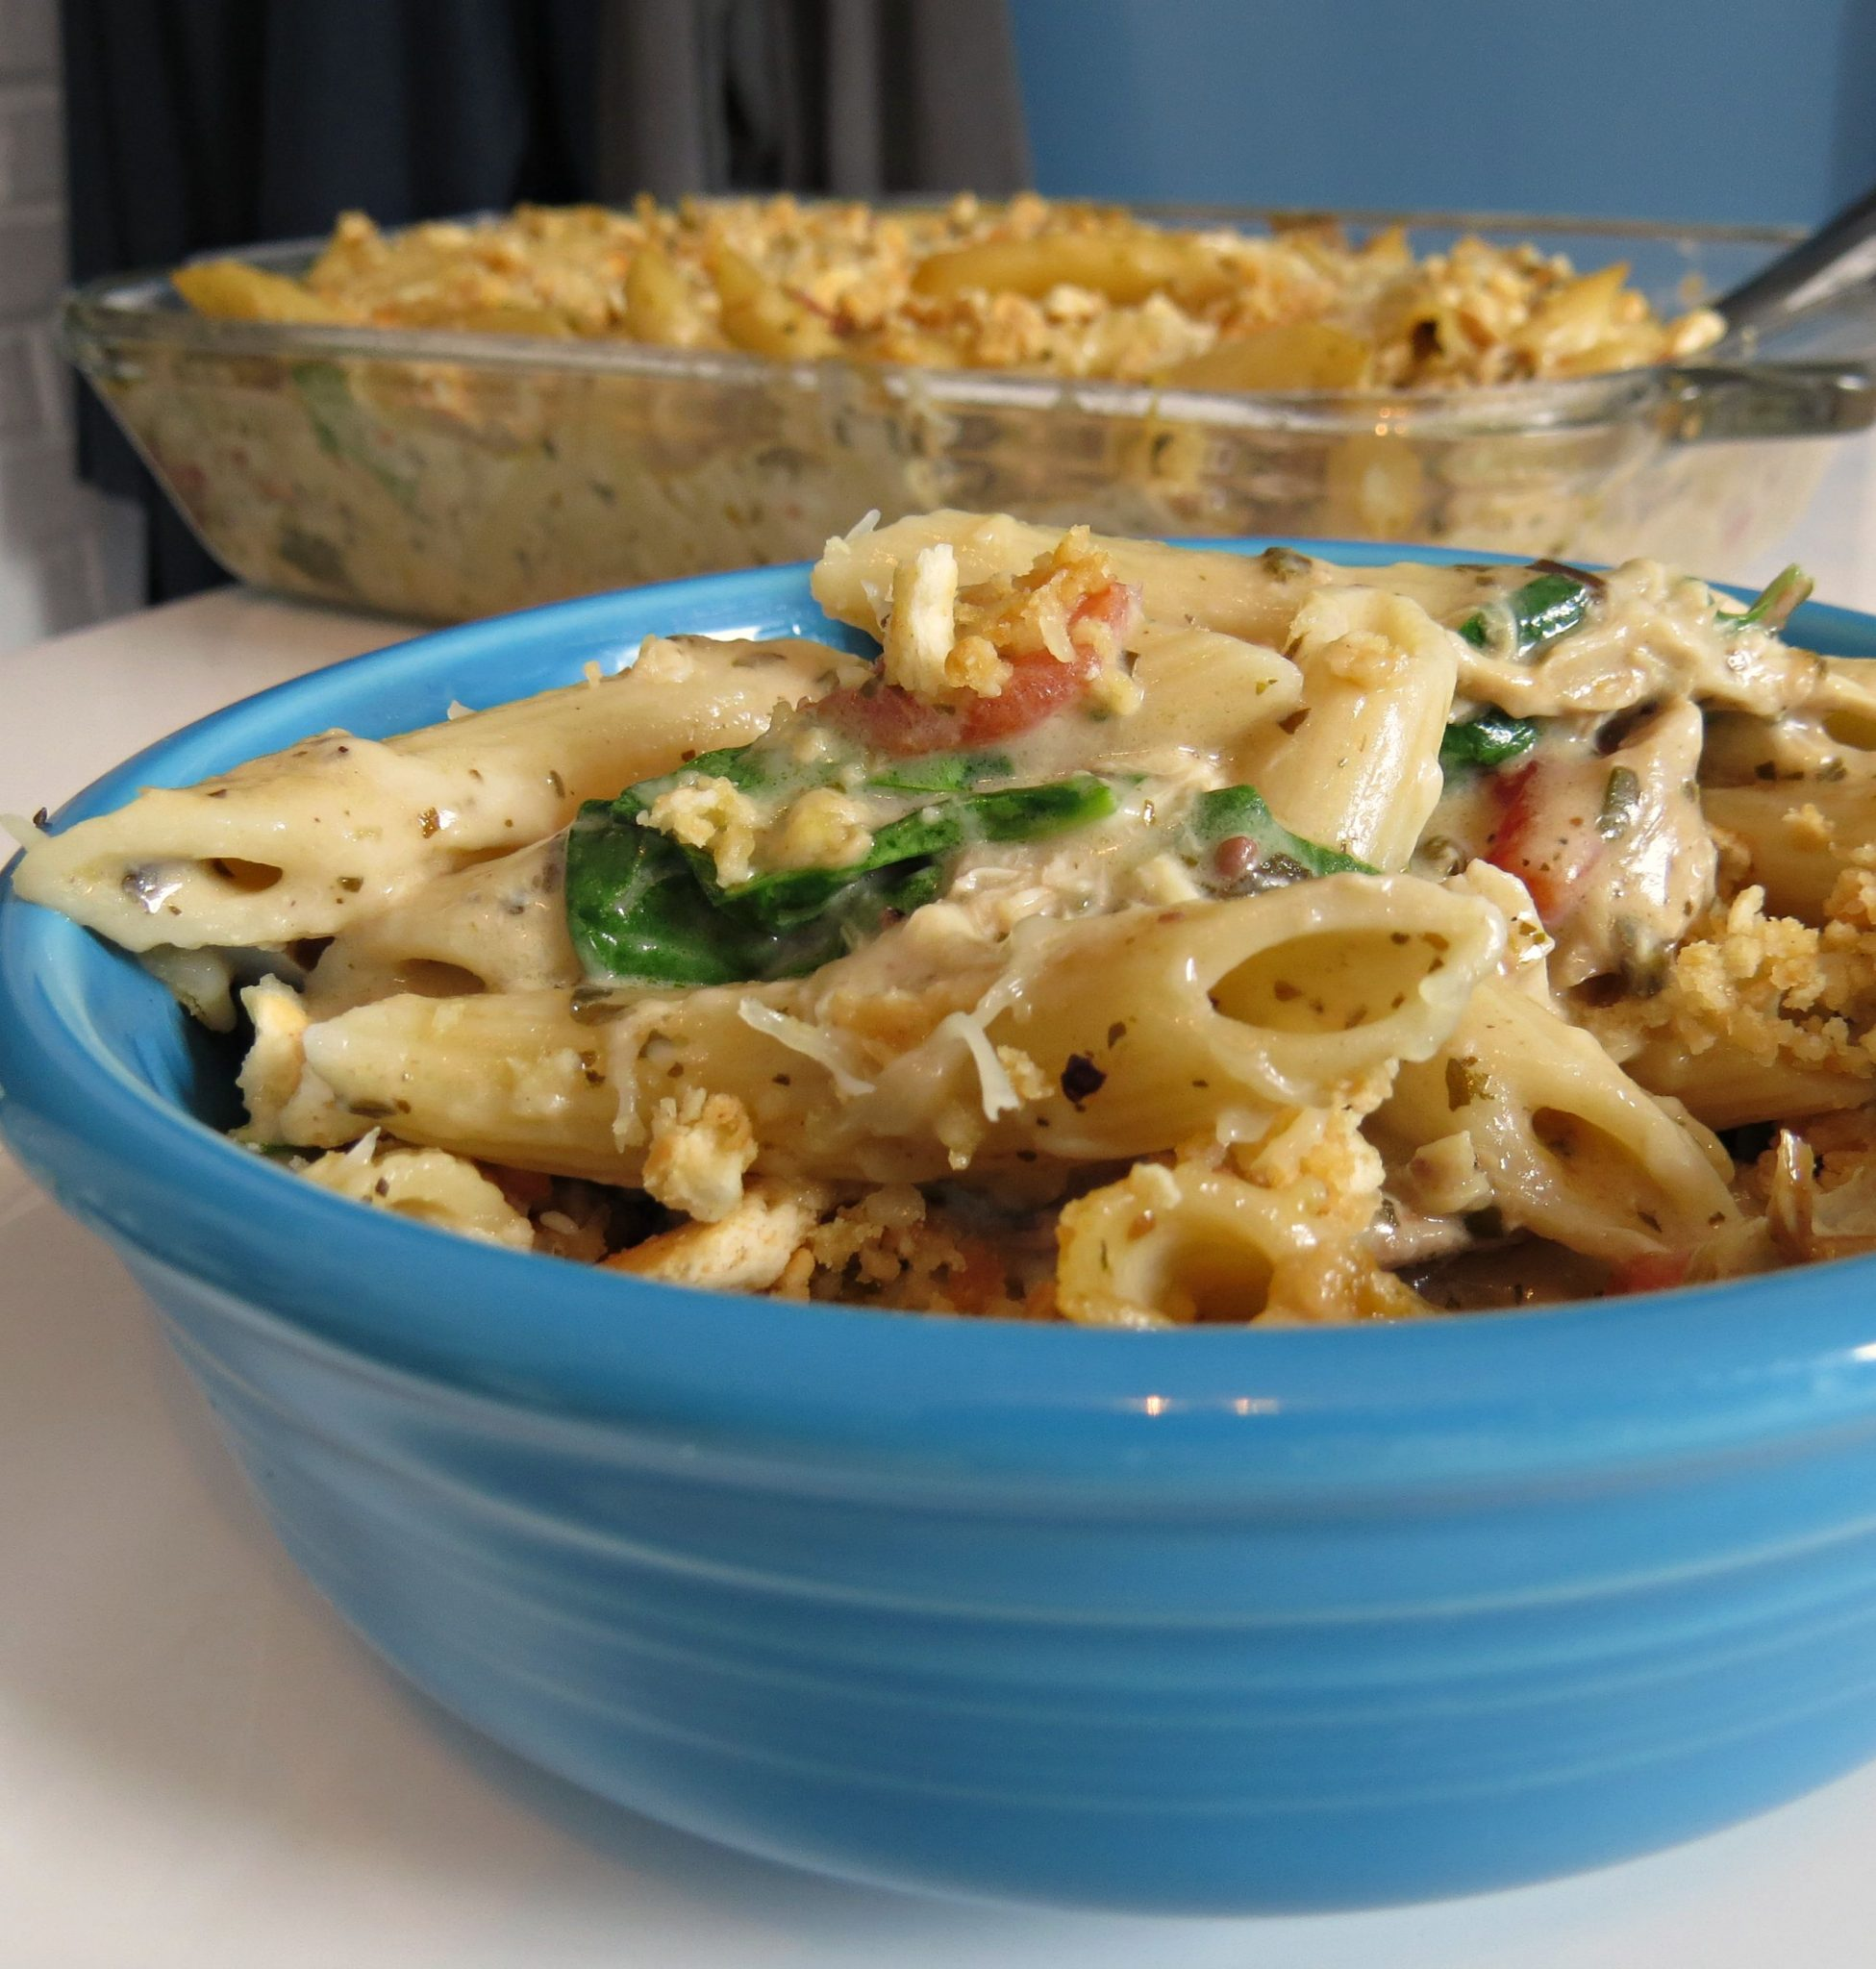 Pesto Chicken Casserole recipe that's creamy and delicious!